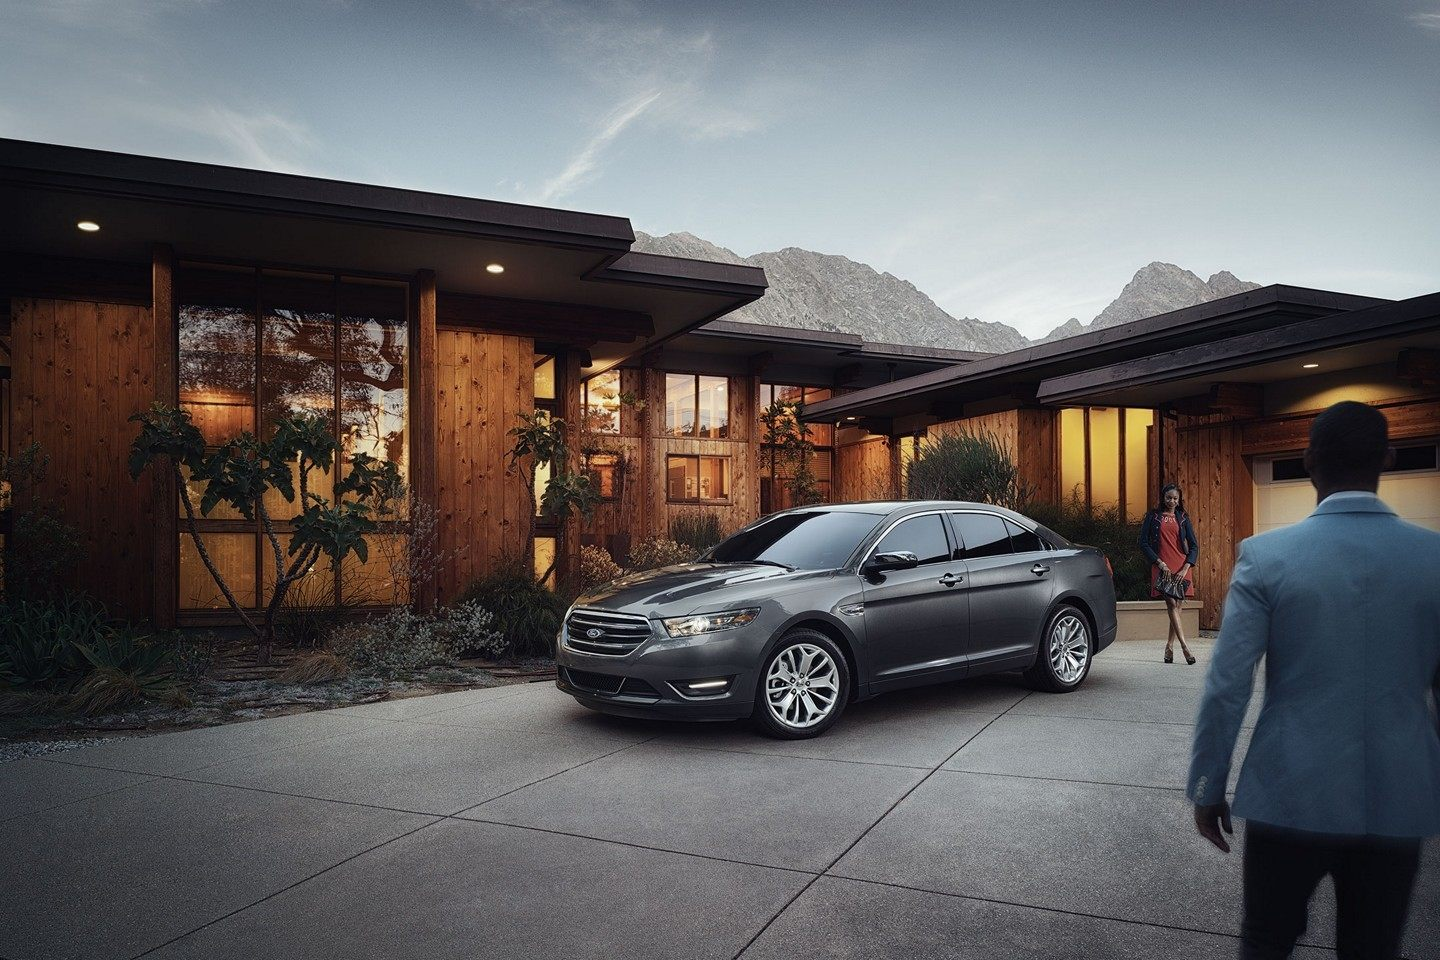 2019 Ford Taurus Gray Front Exterior.jpeg